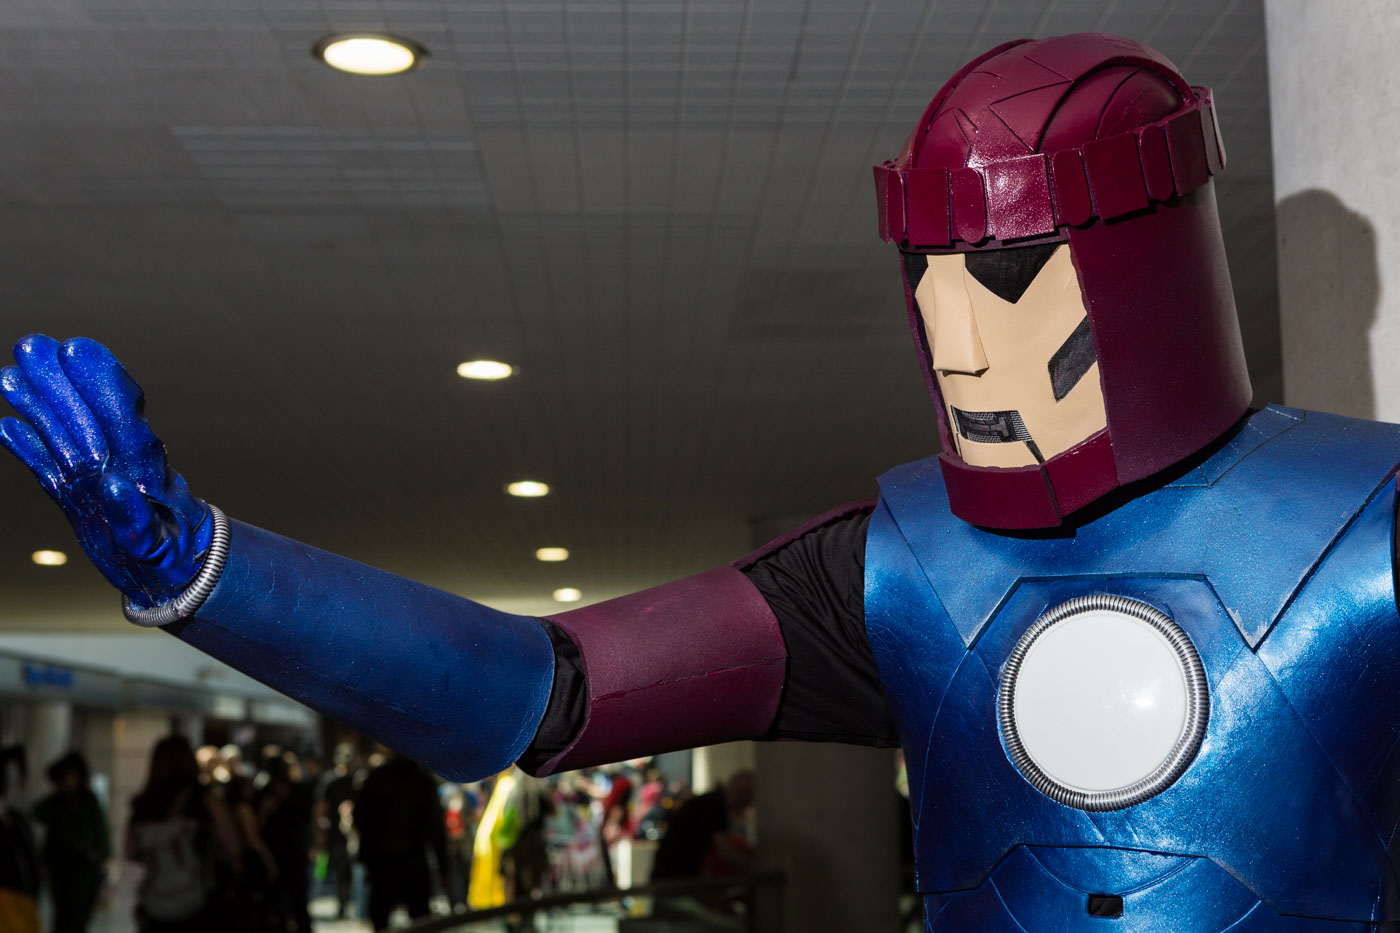 Sentinel by Detty Cosplay. New York Comic Con. Saturday October 10, 2015.